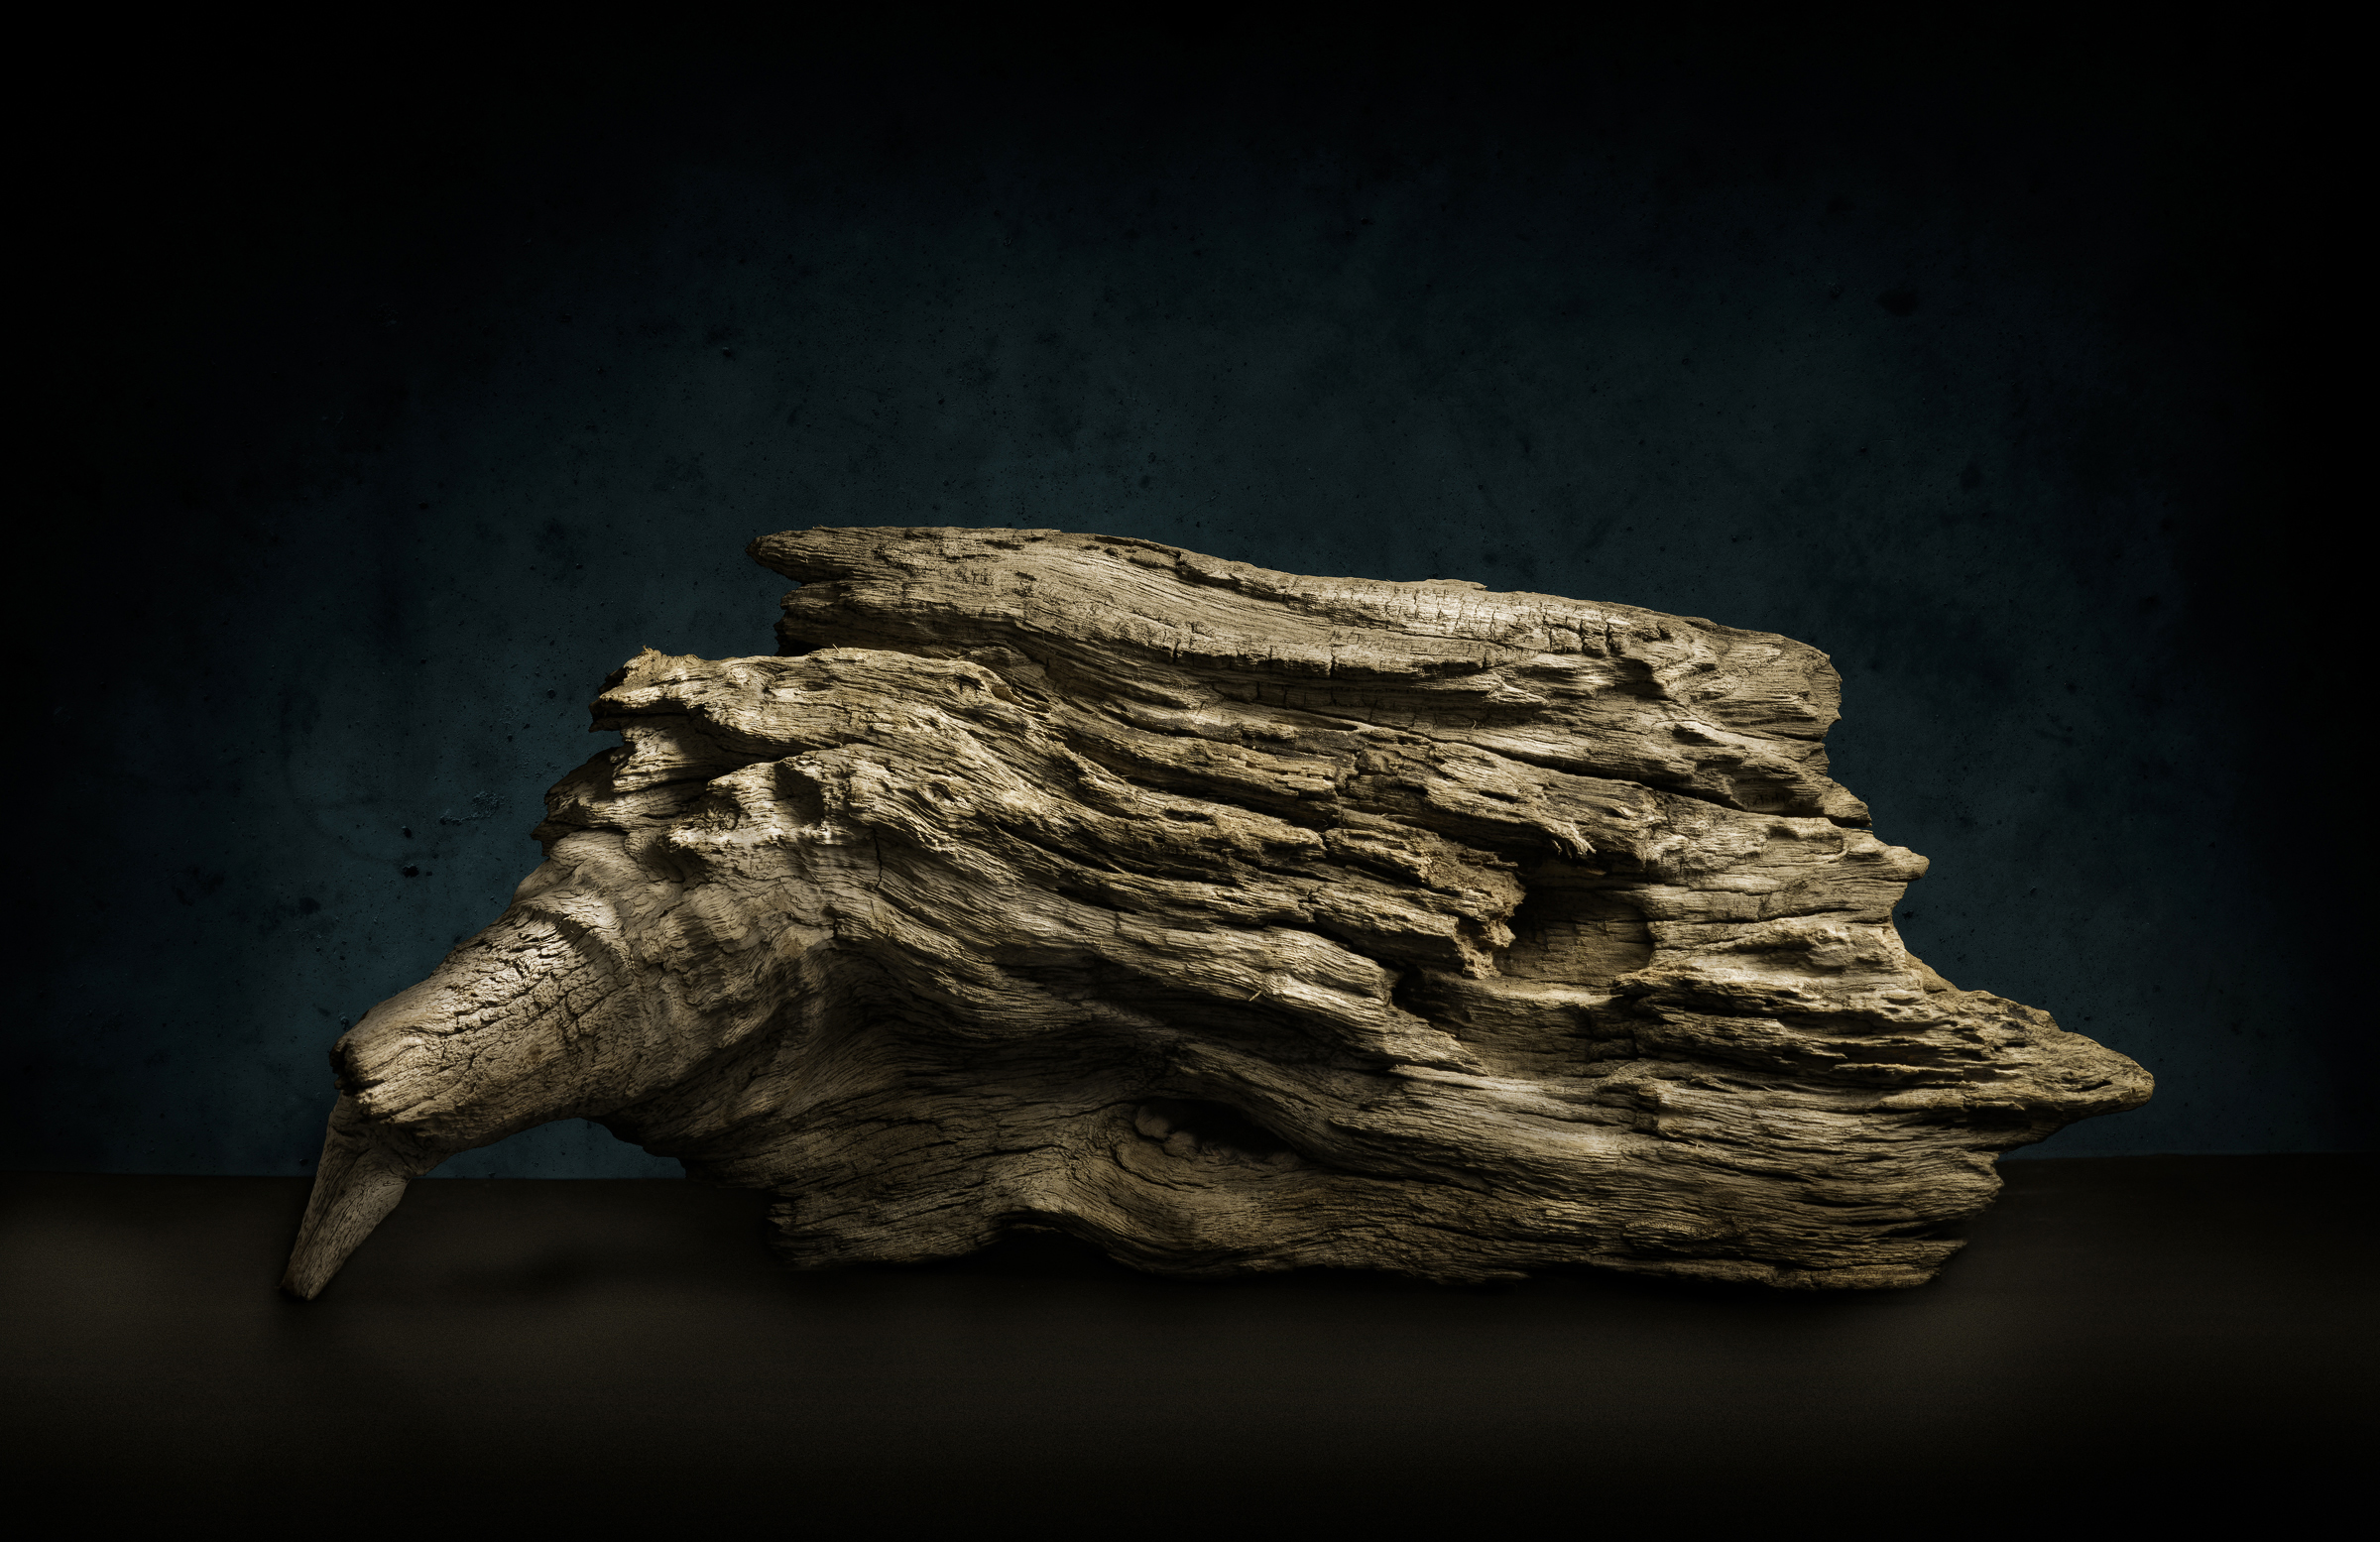 I learned two things on this piece; one is that wood can take on the appearance of many other natural forms (feathers, scales, rock strata, etc.) depending on how one lights it. Then, also, there are endless puns one can make because of this.